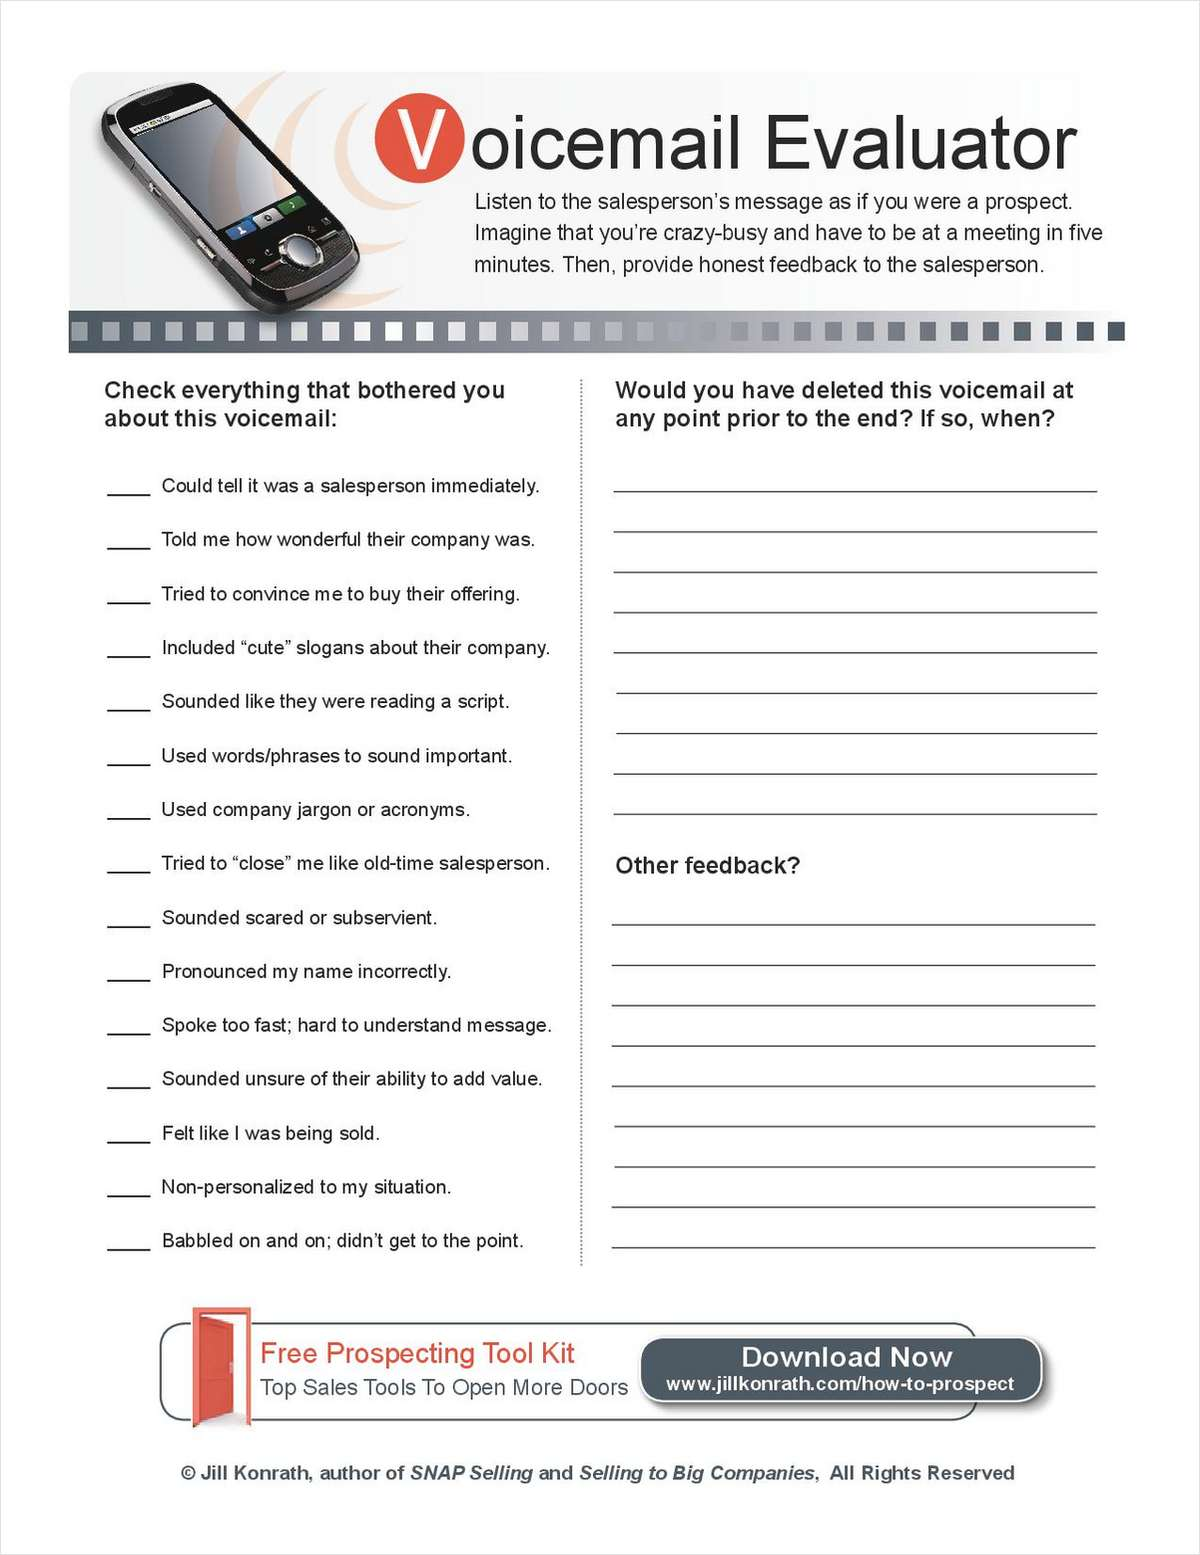 Voicemail Evaluator Cheat Sheet